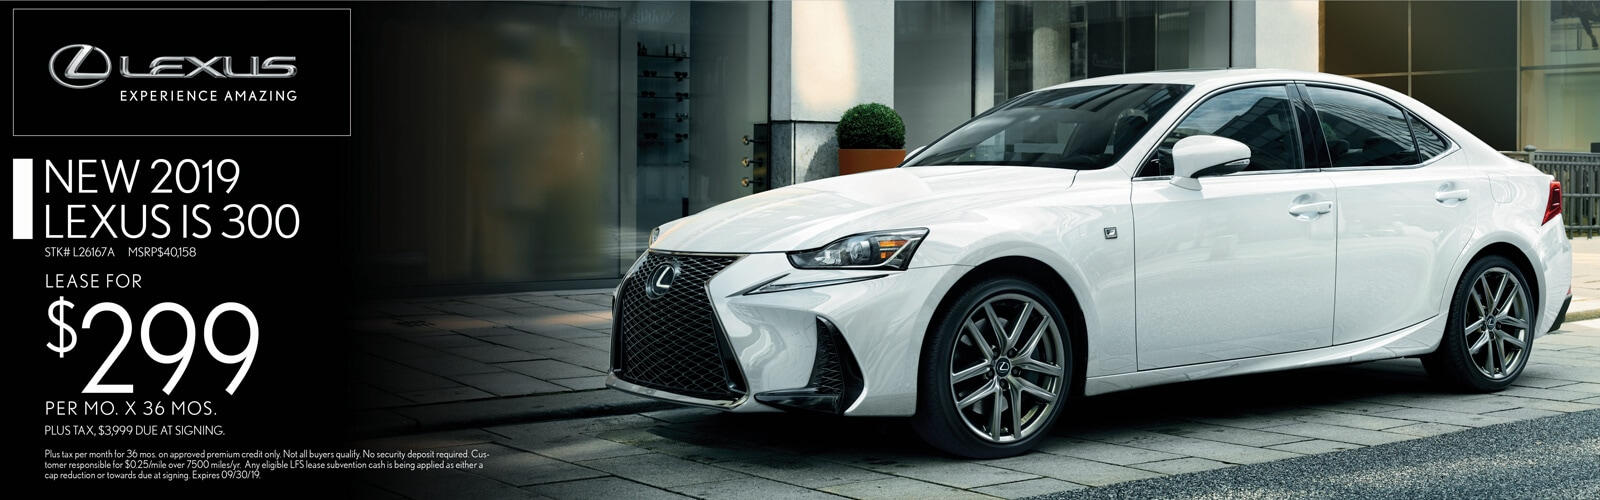 Lease a 2019 Lexus IS 300 for $299/mo. for 36 mos.